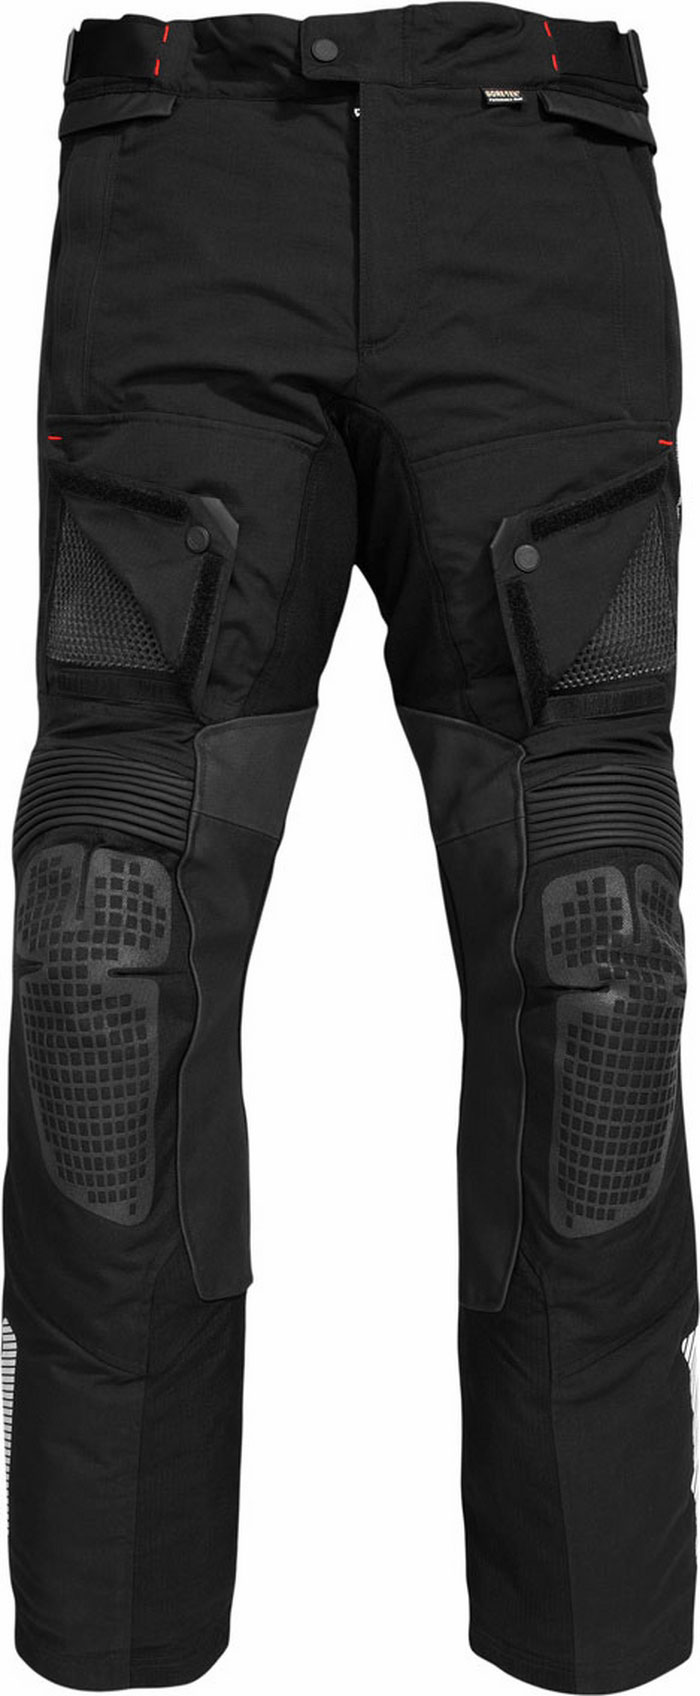 Pantaloni moto Rev'it Defender GTX Nero - Allungato